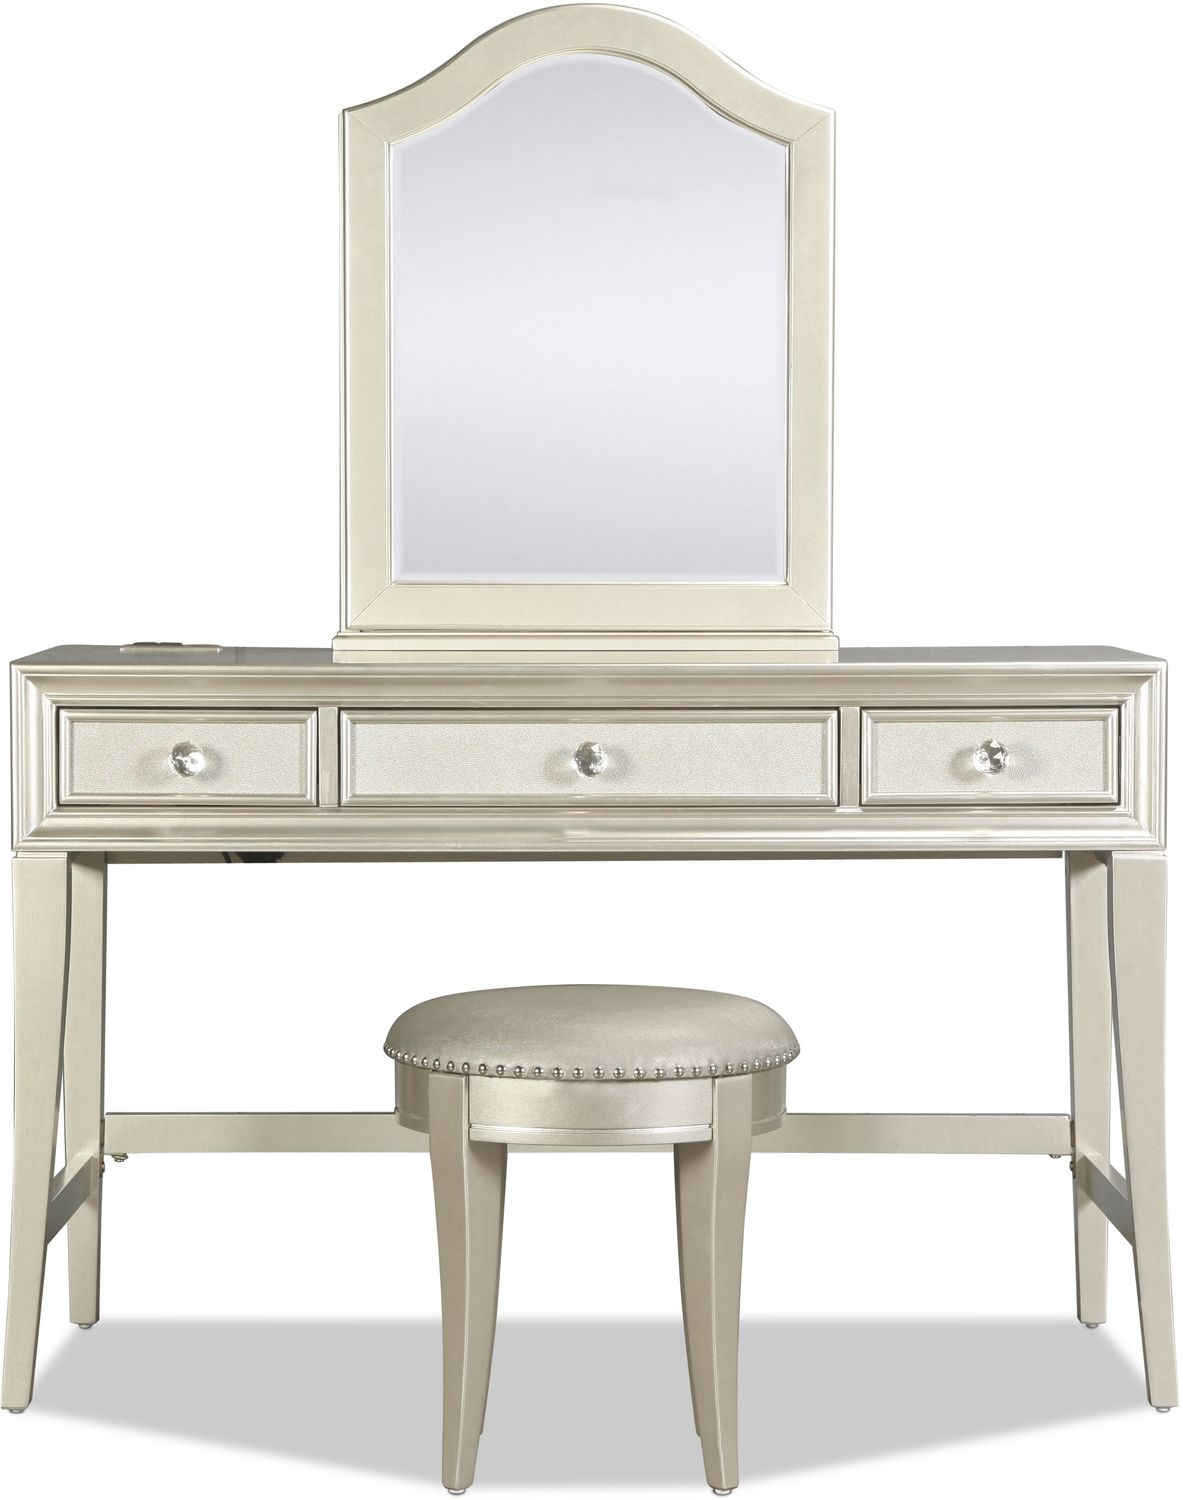 Lil Posh Vanity Mirror Platinum Levin Furniture